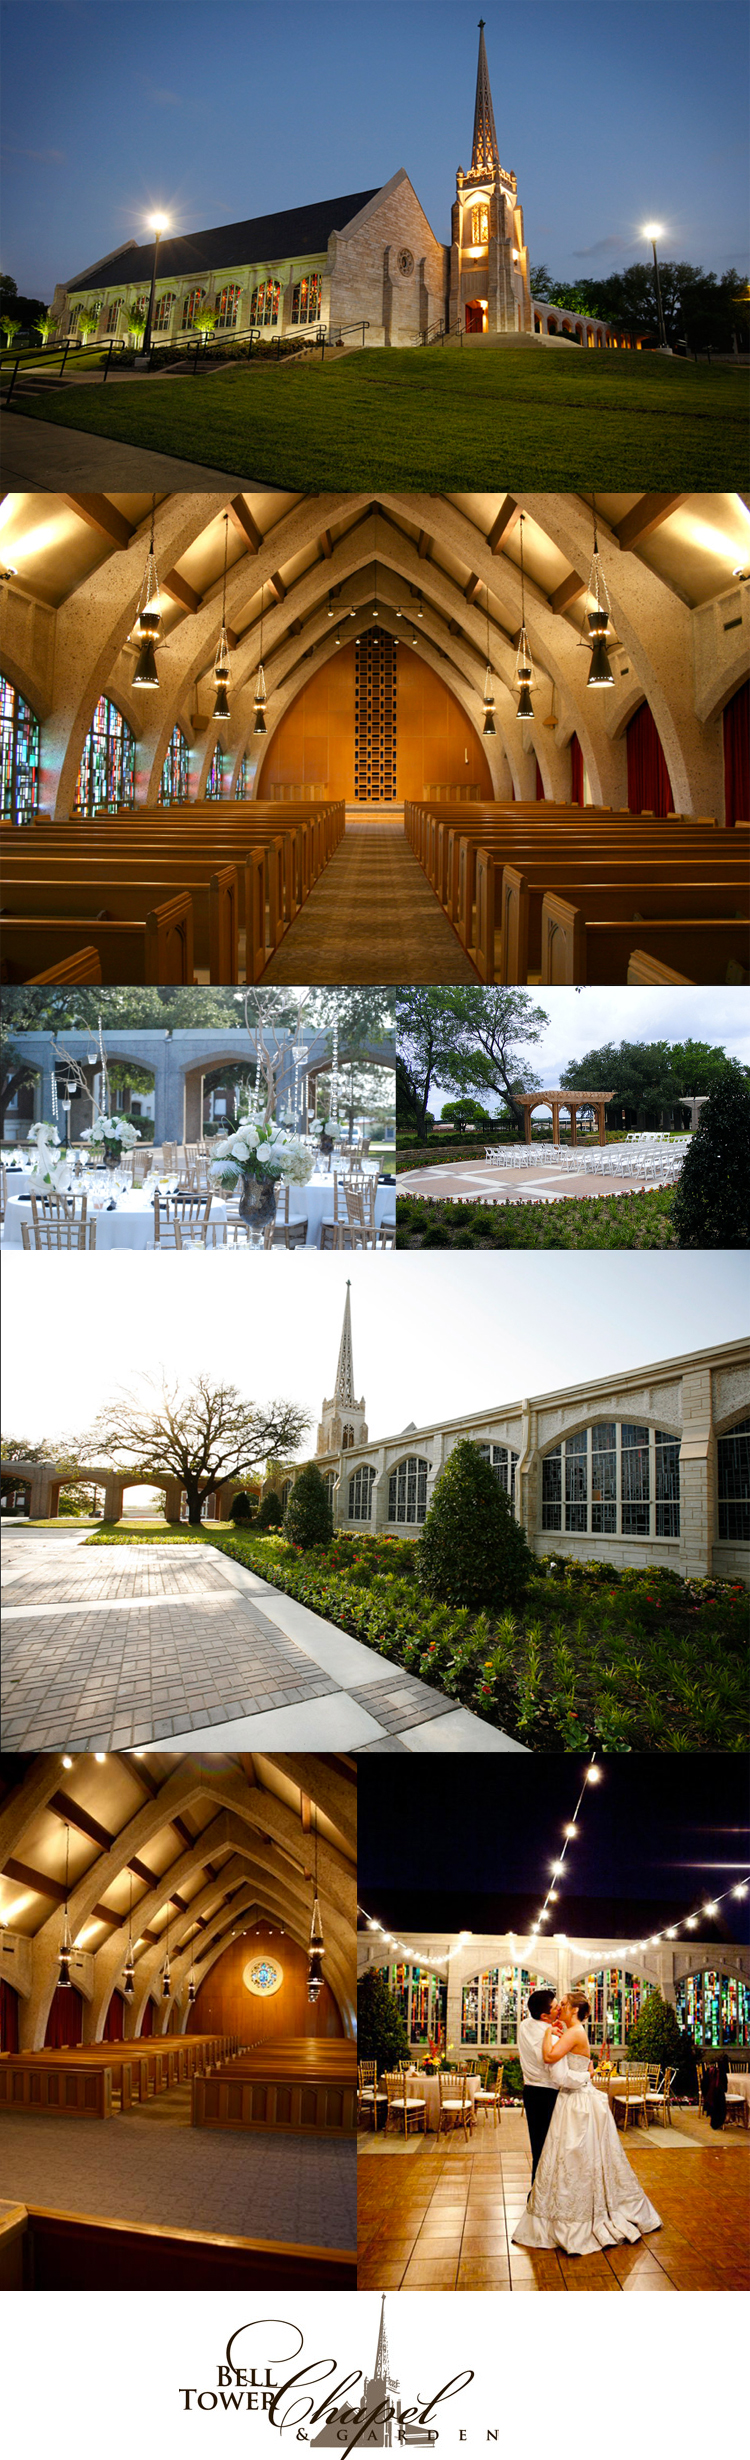 Fort Worth wedding and reception venue the Belltower Chapel & Garden